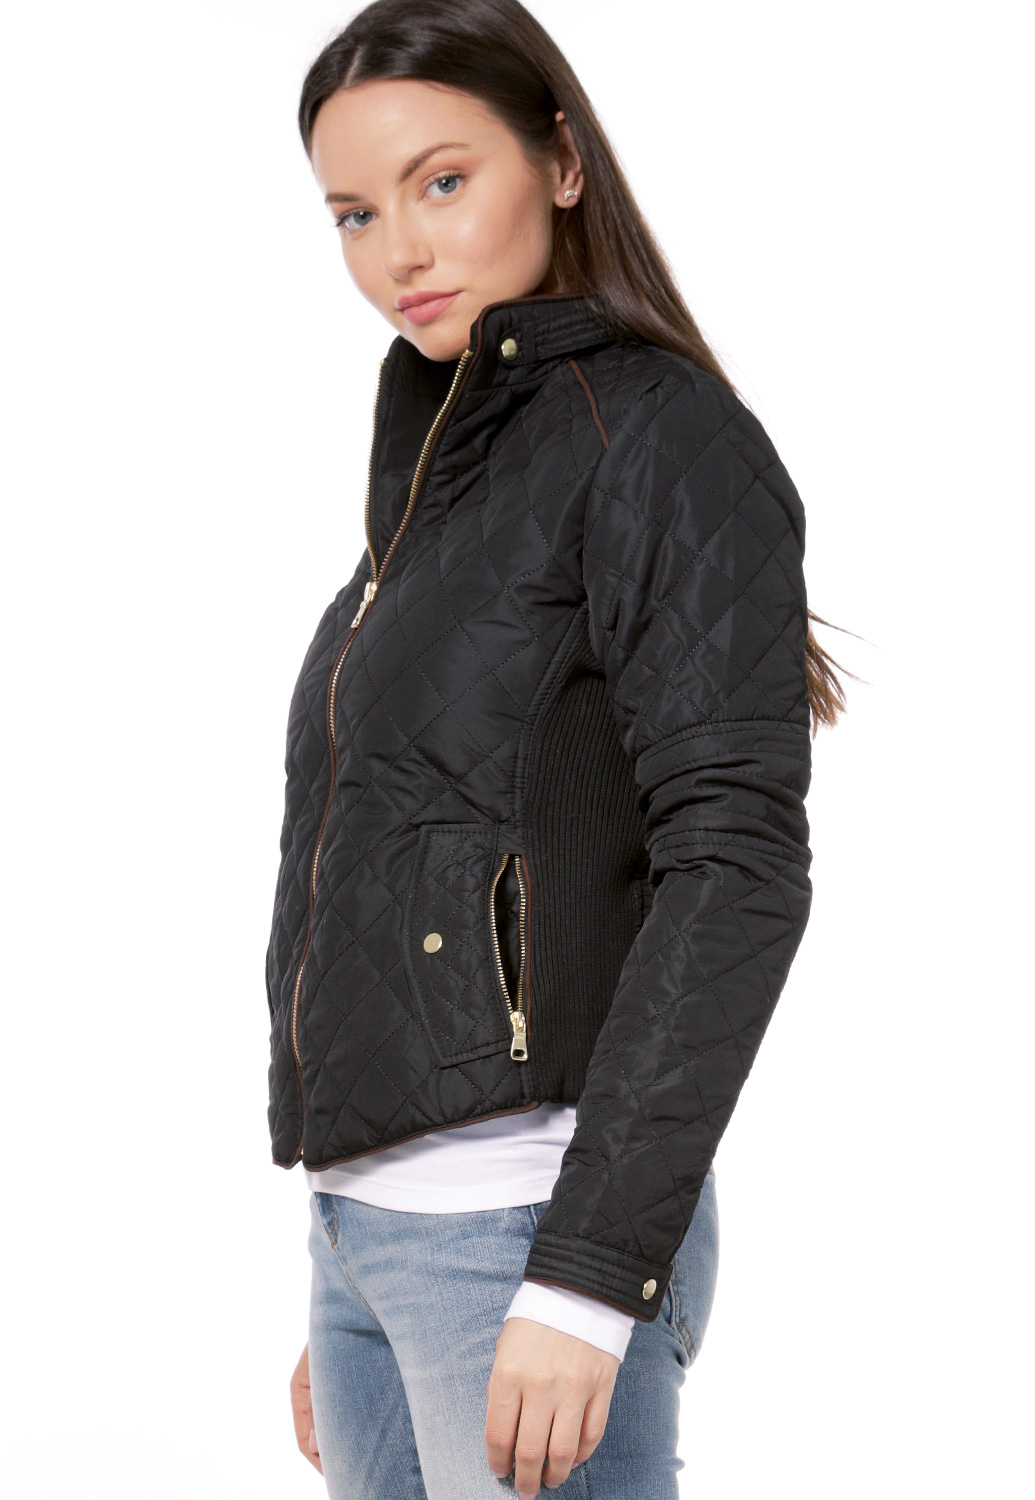 Padded Zip Up Jacket